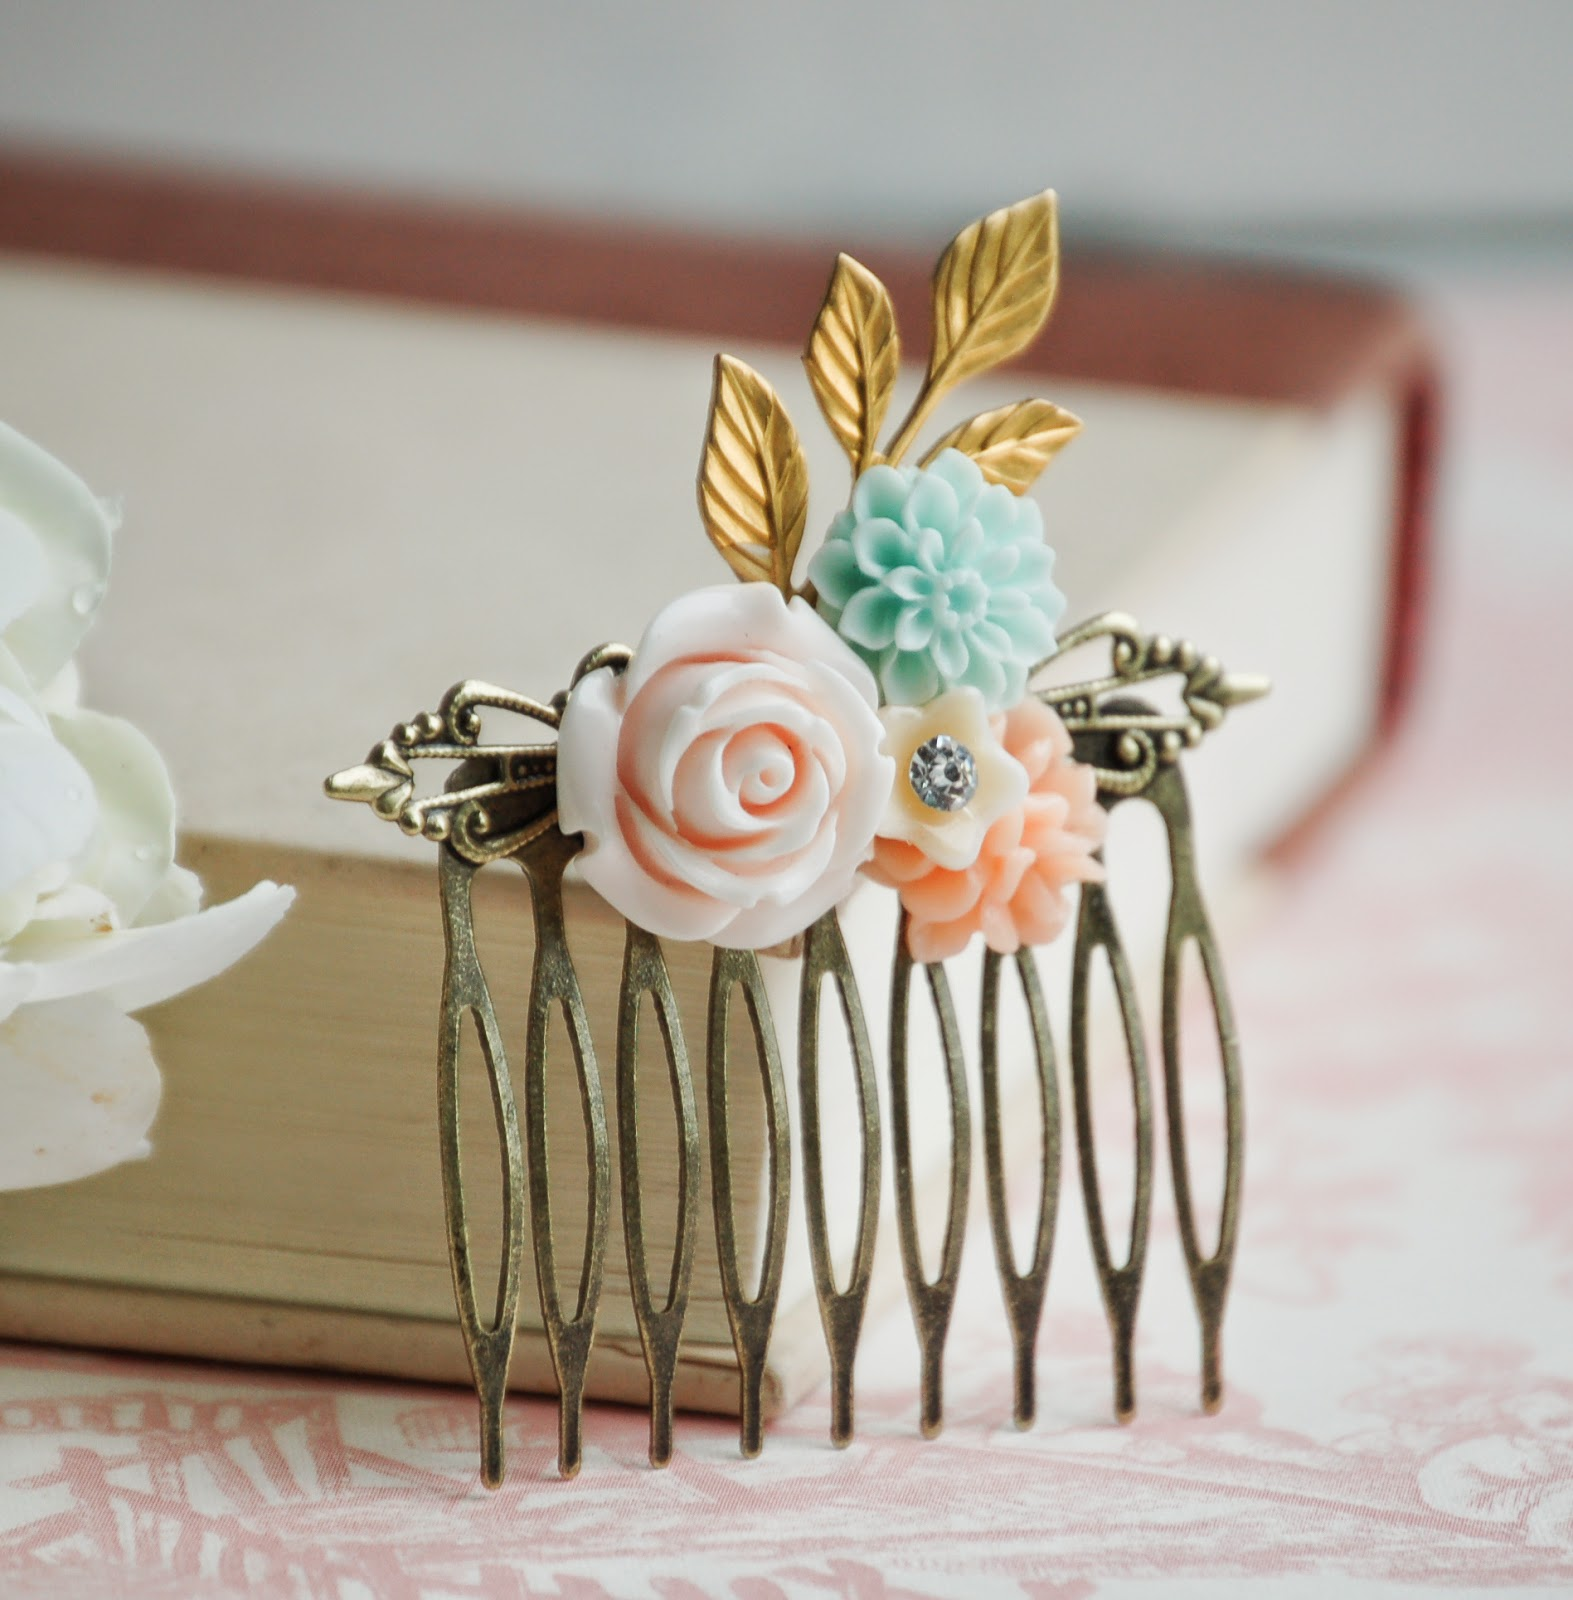 https://www.etsy.com/listing/190818440/rose-flower-hair-comb-pink-peach-aqua?ref=shop_home_active_2&ga_search_query=flower%2Bhair%2Bcombs